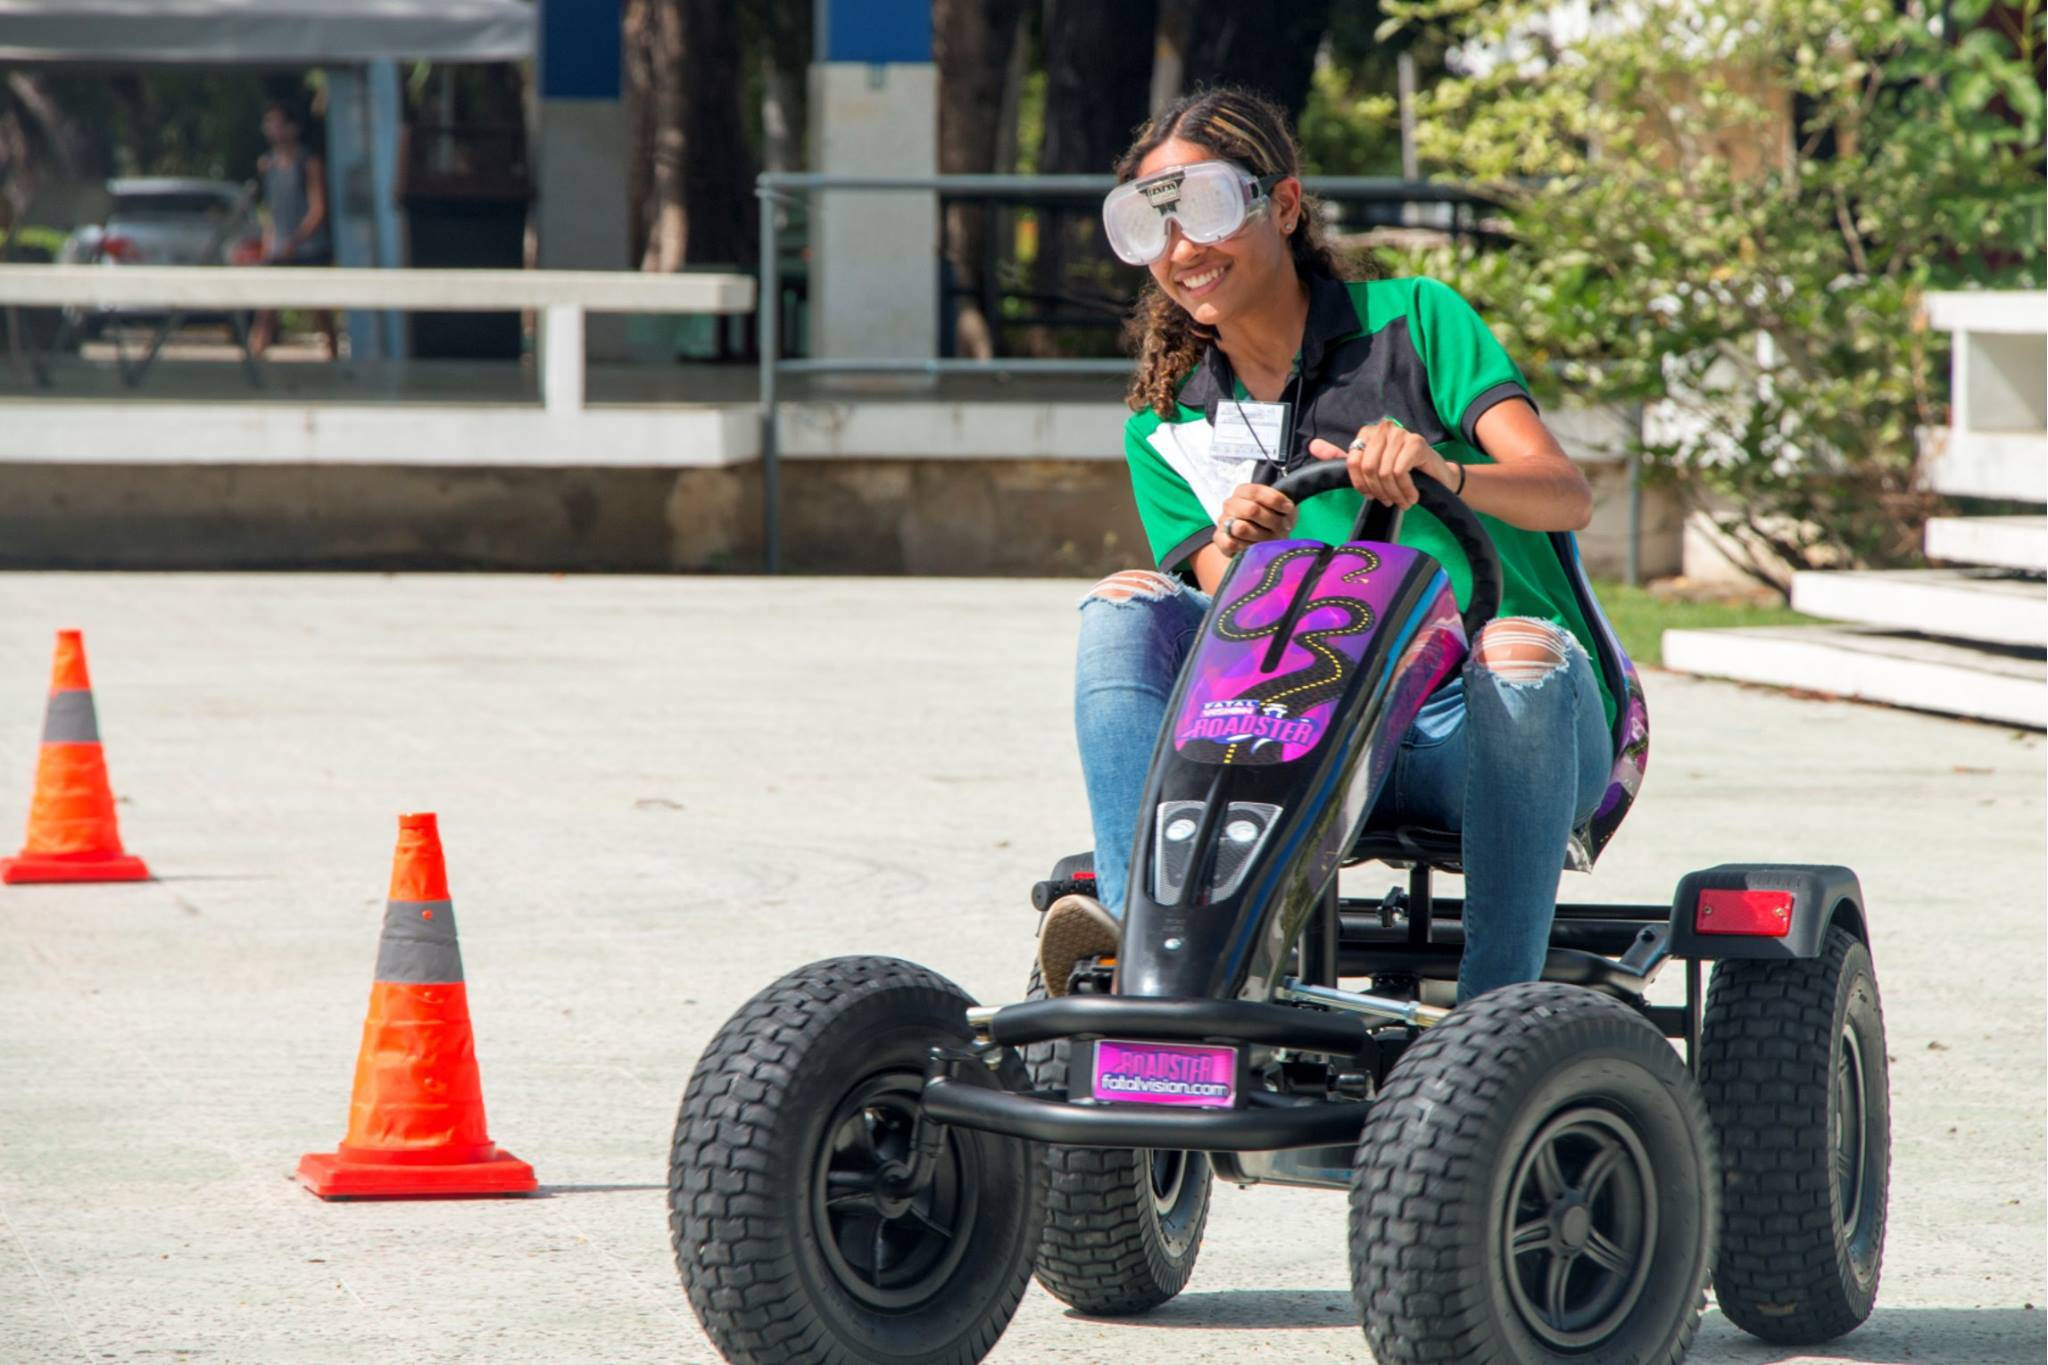 Drunk driving simulators or pedal karts are tools to use in a drunk driving prevention program.